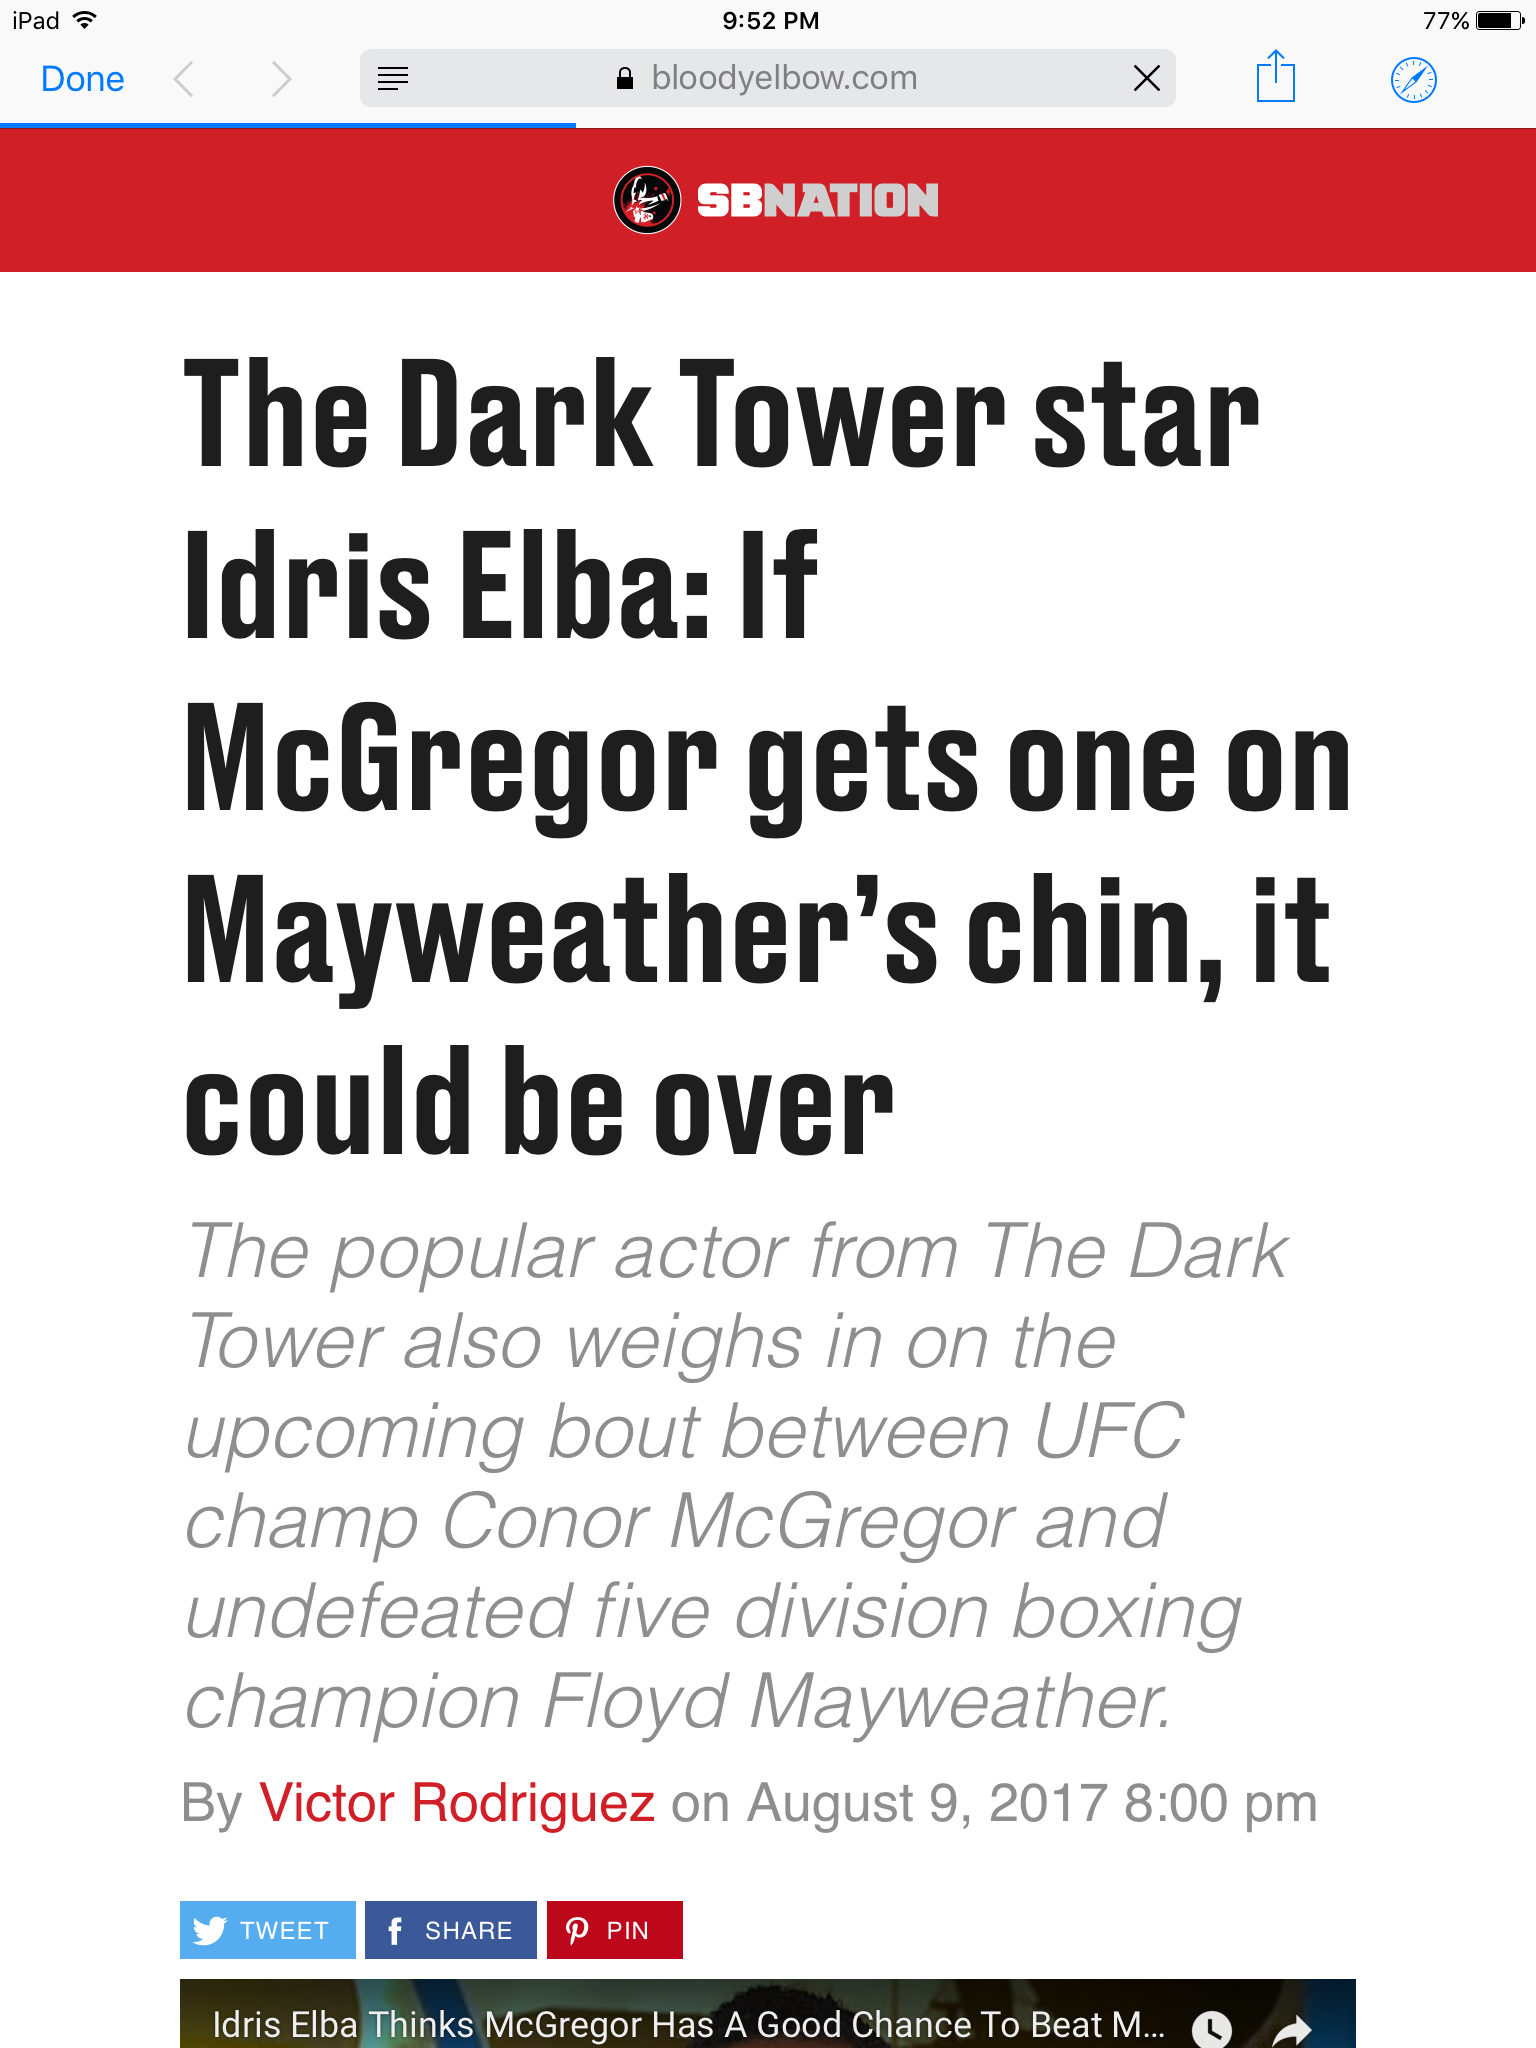 McGregor vs. mayweather hot take